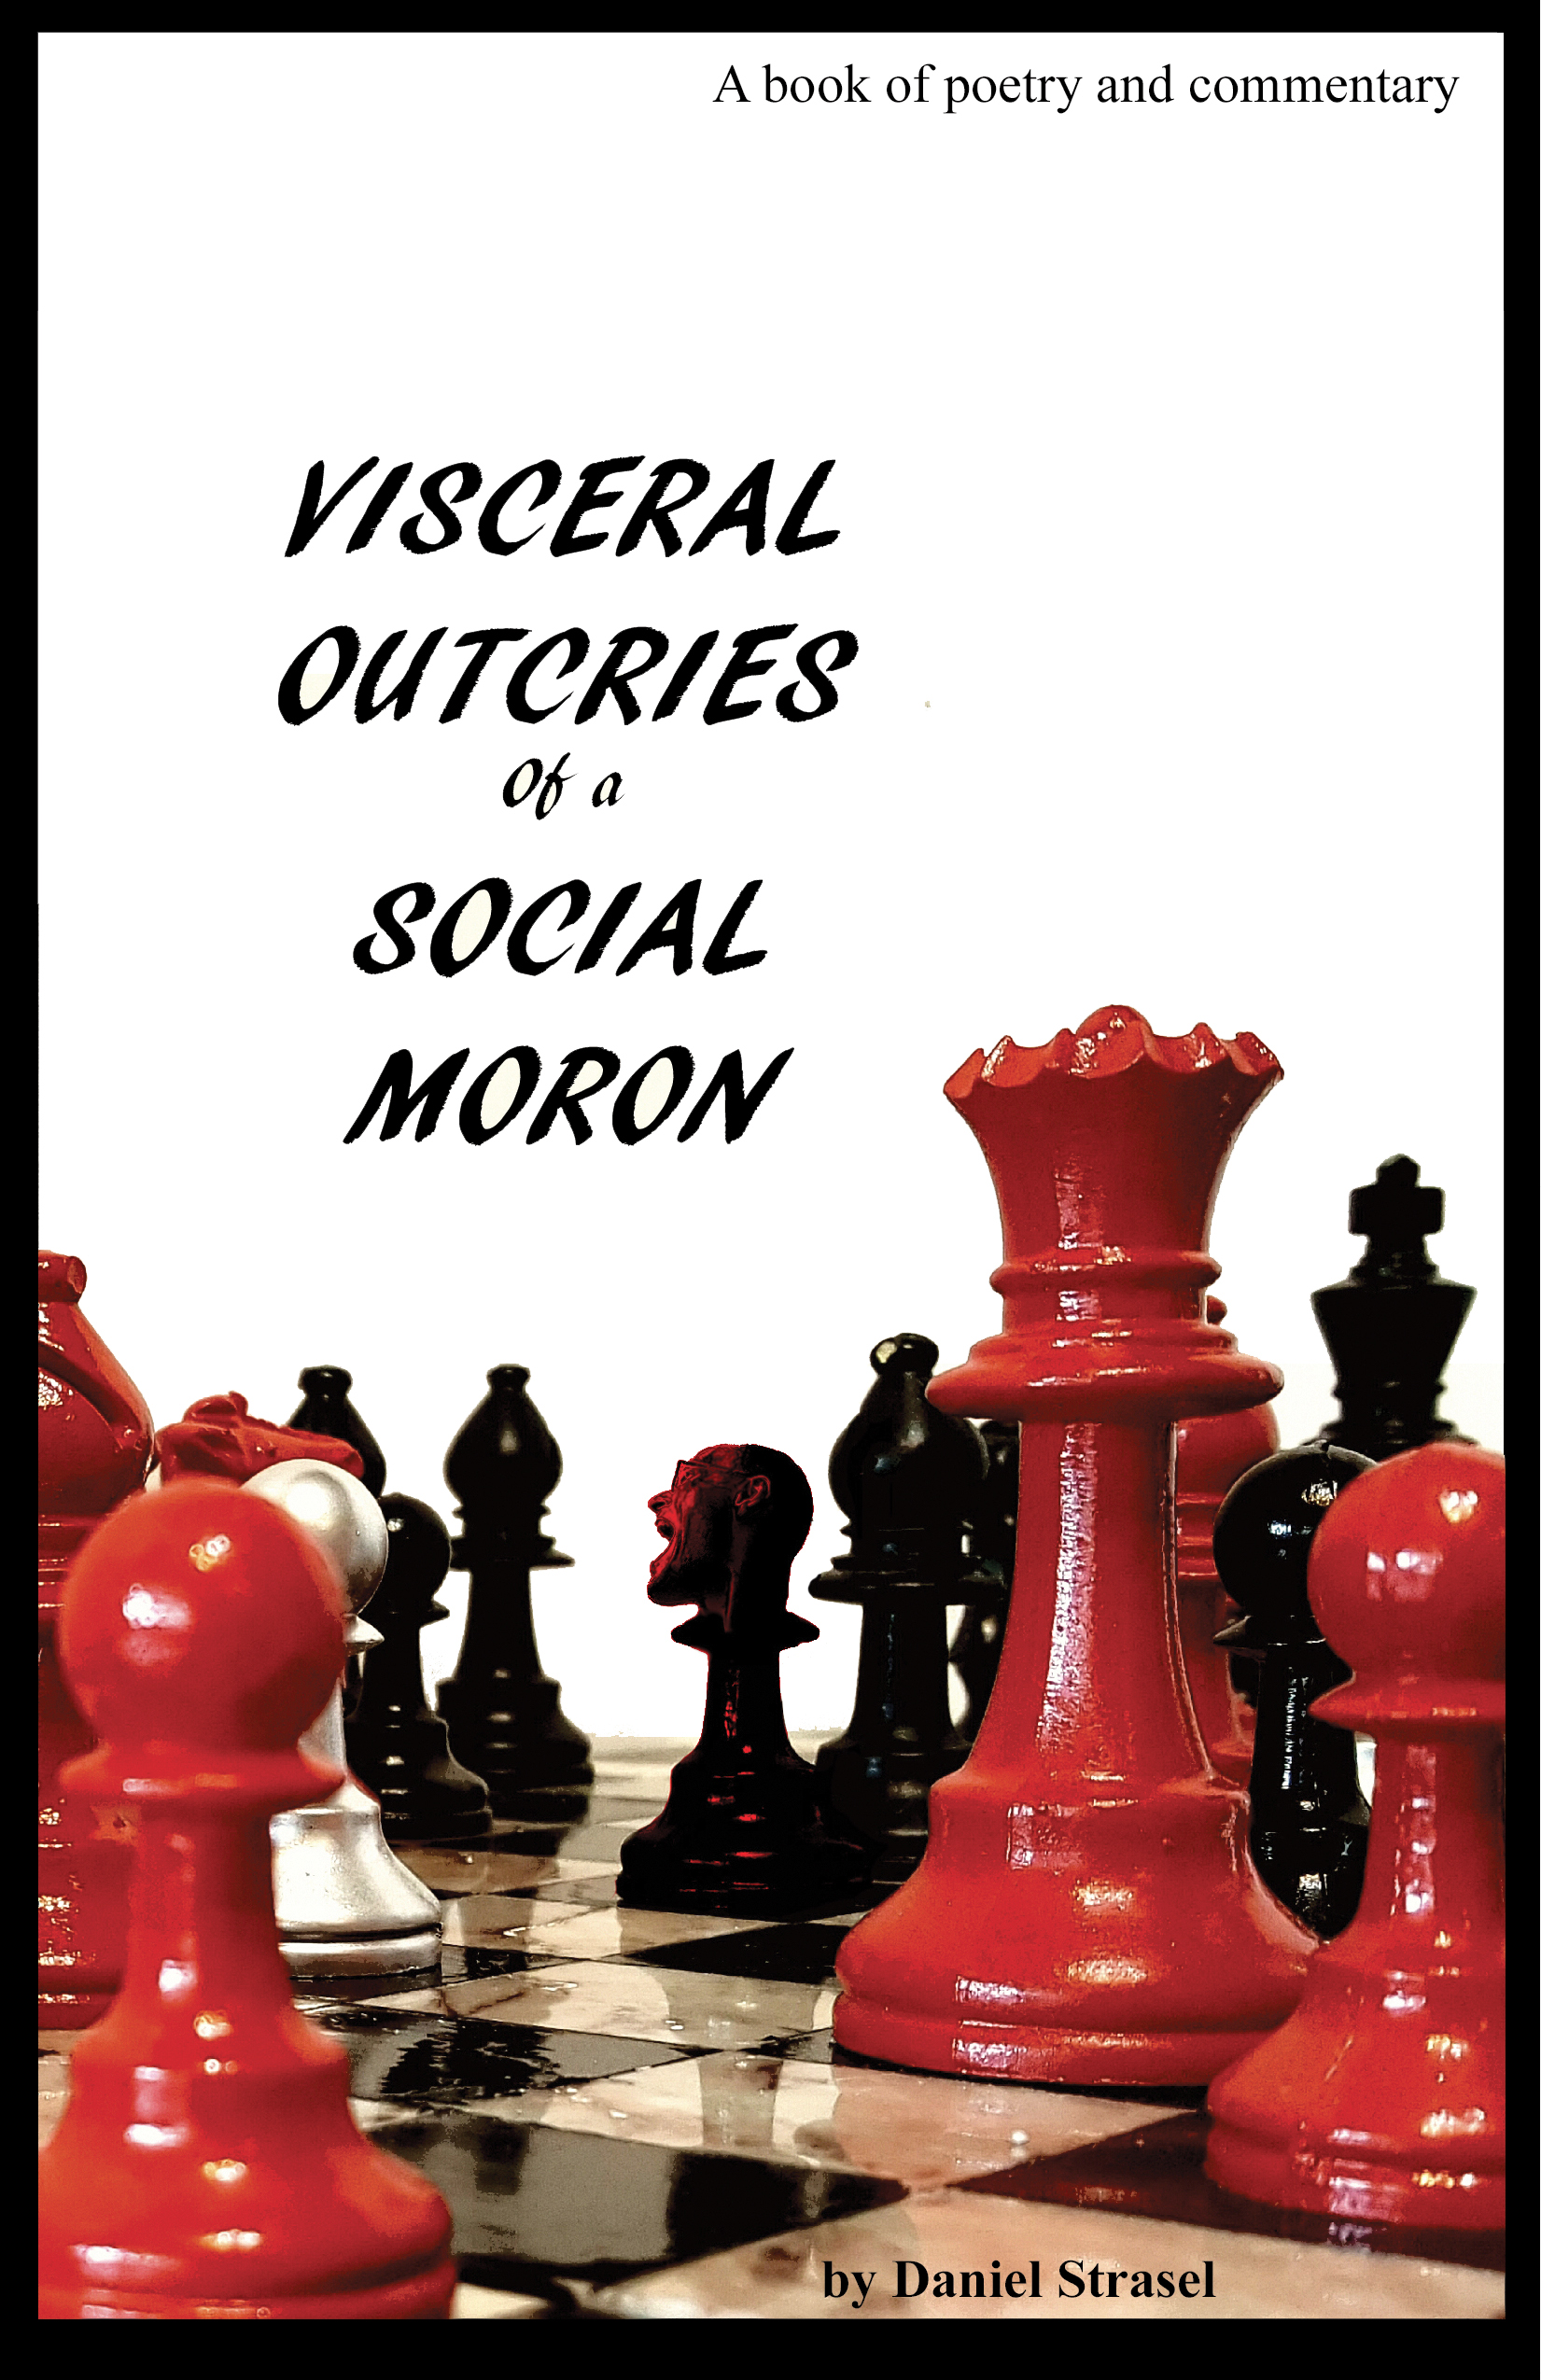 Visceral Outcries of a Social Moron